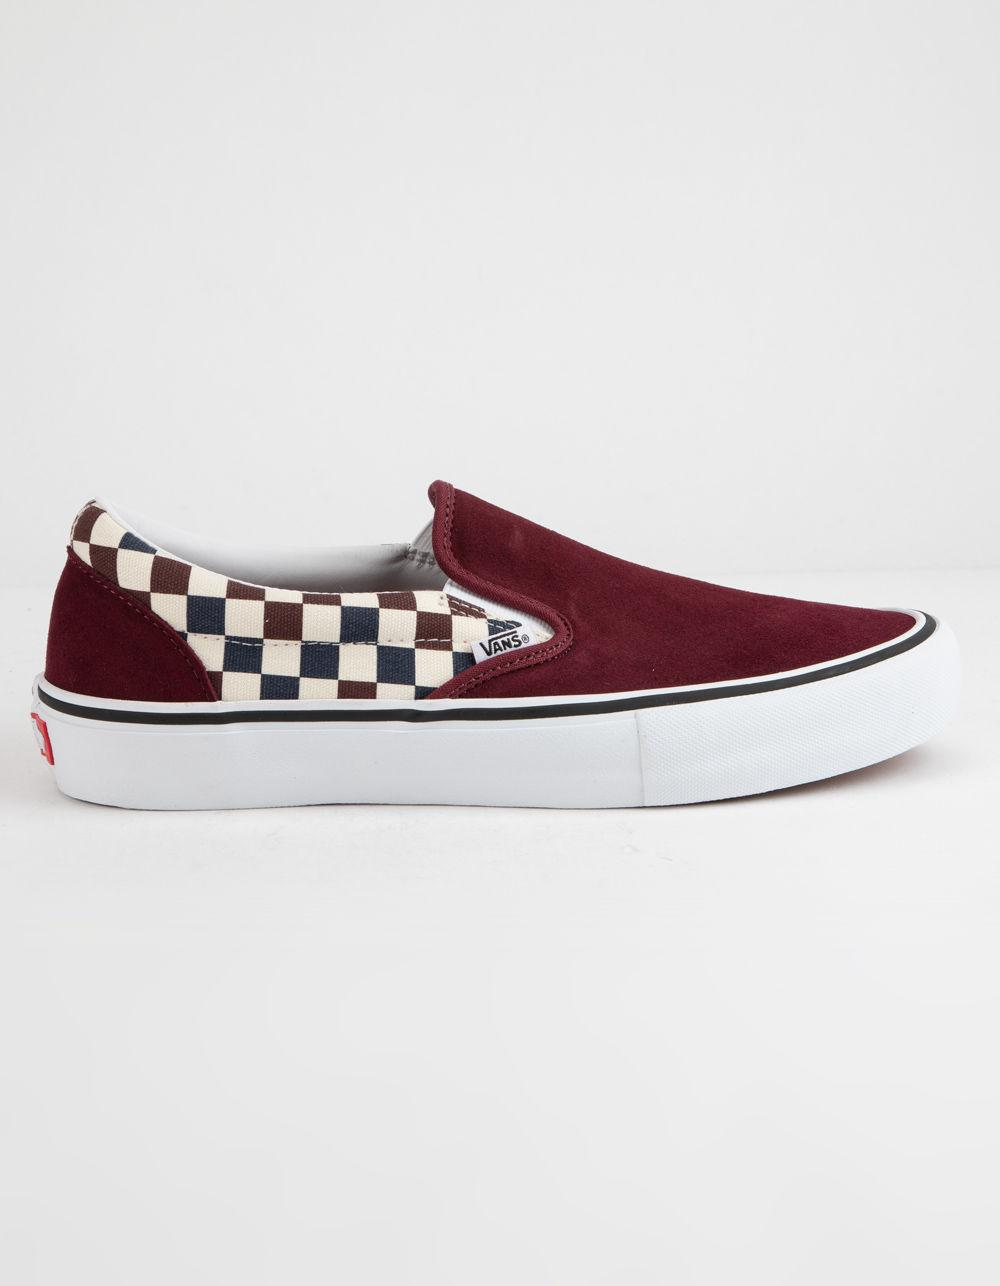 6528173595c2 Vans - Red Checkerboard Slip-on Pro Port Royal Royal Shoes - Lyst. View  fullscreen